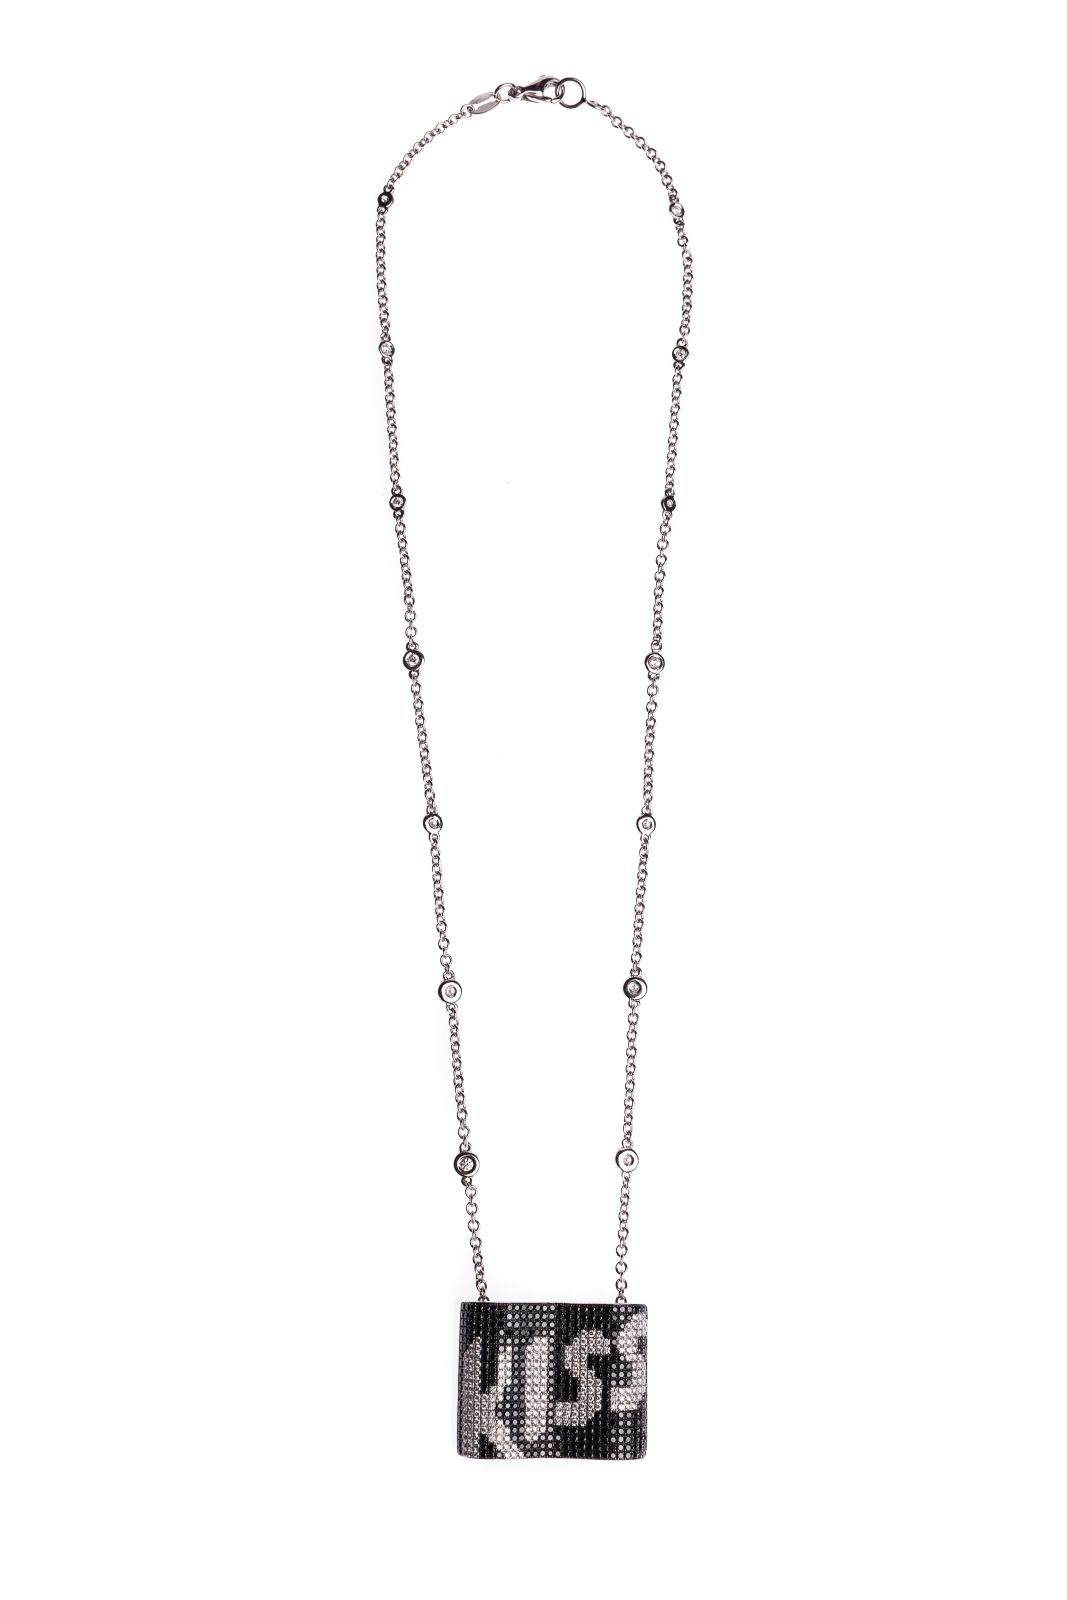 #88 Kiss-necklace | Kiss-Collier Image